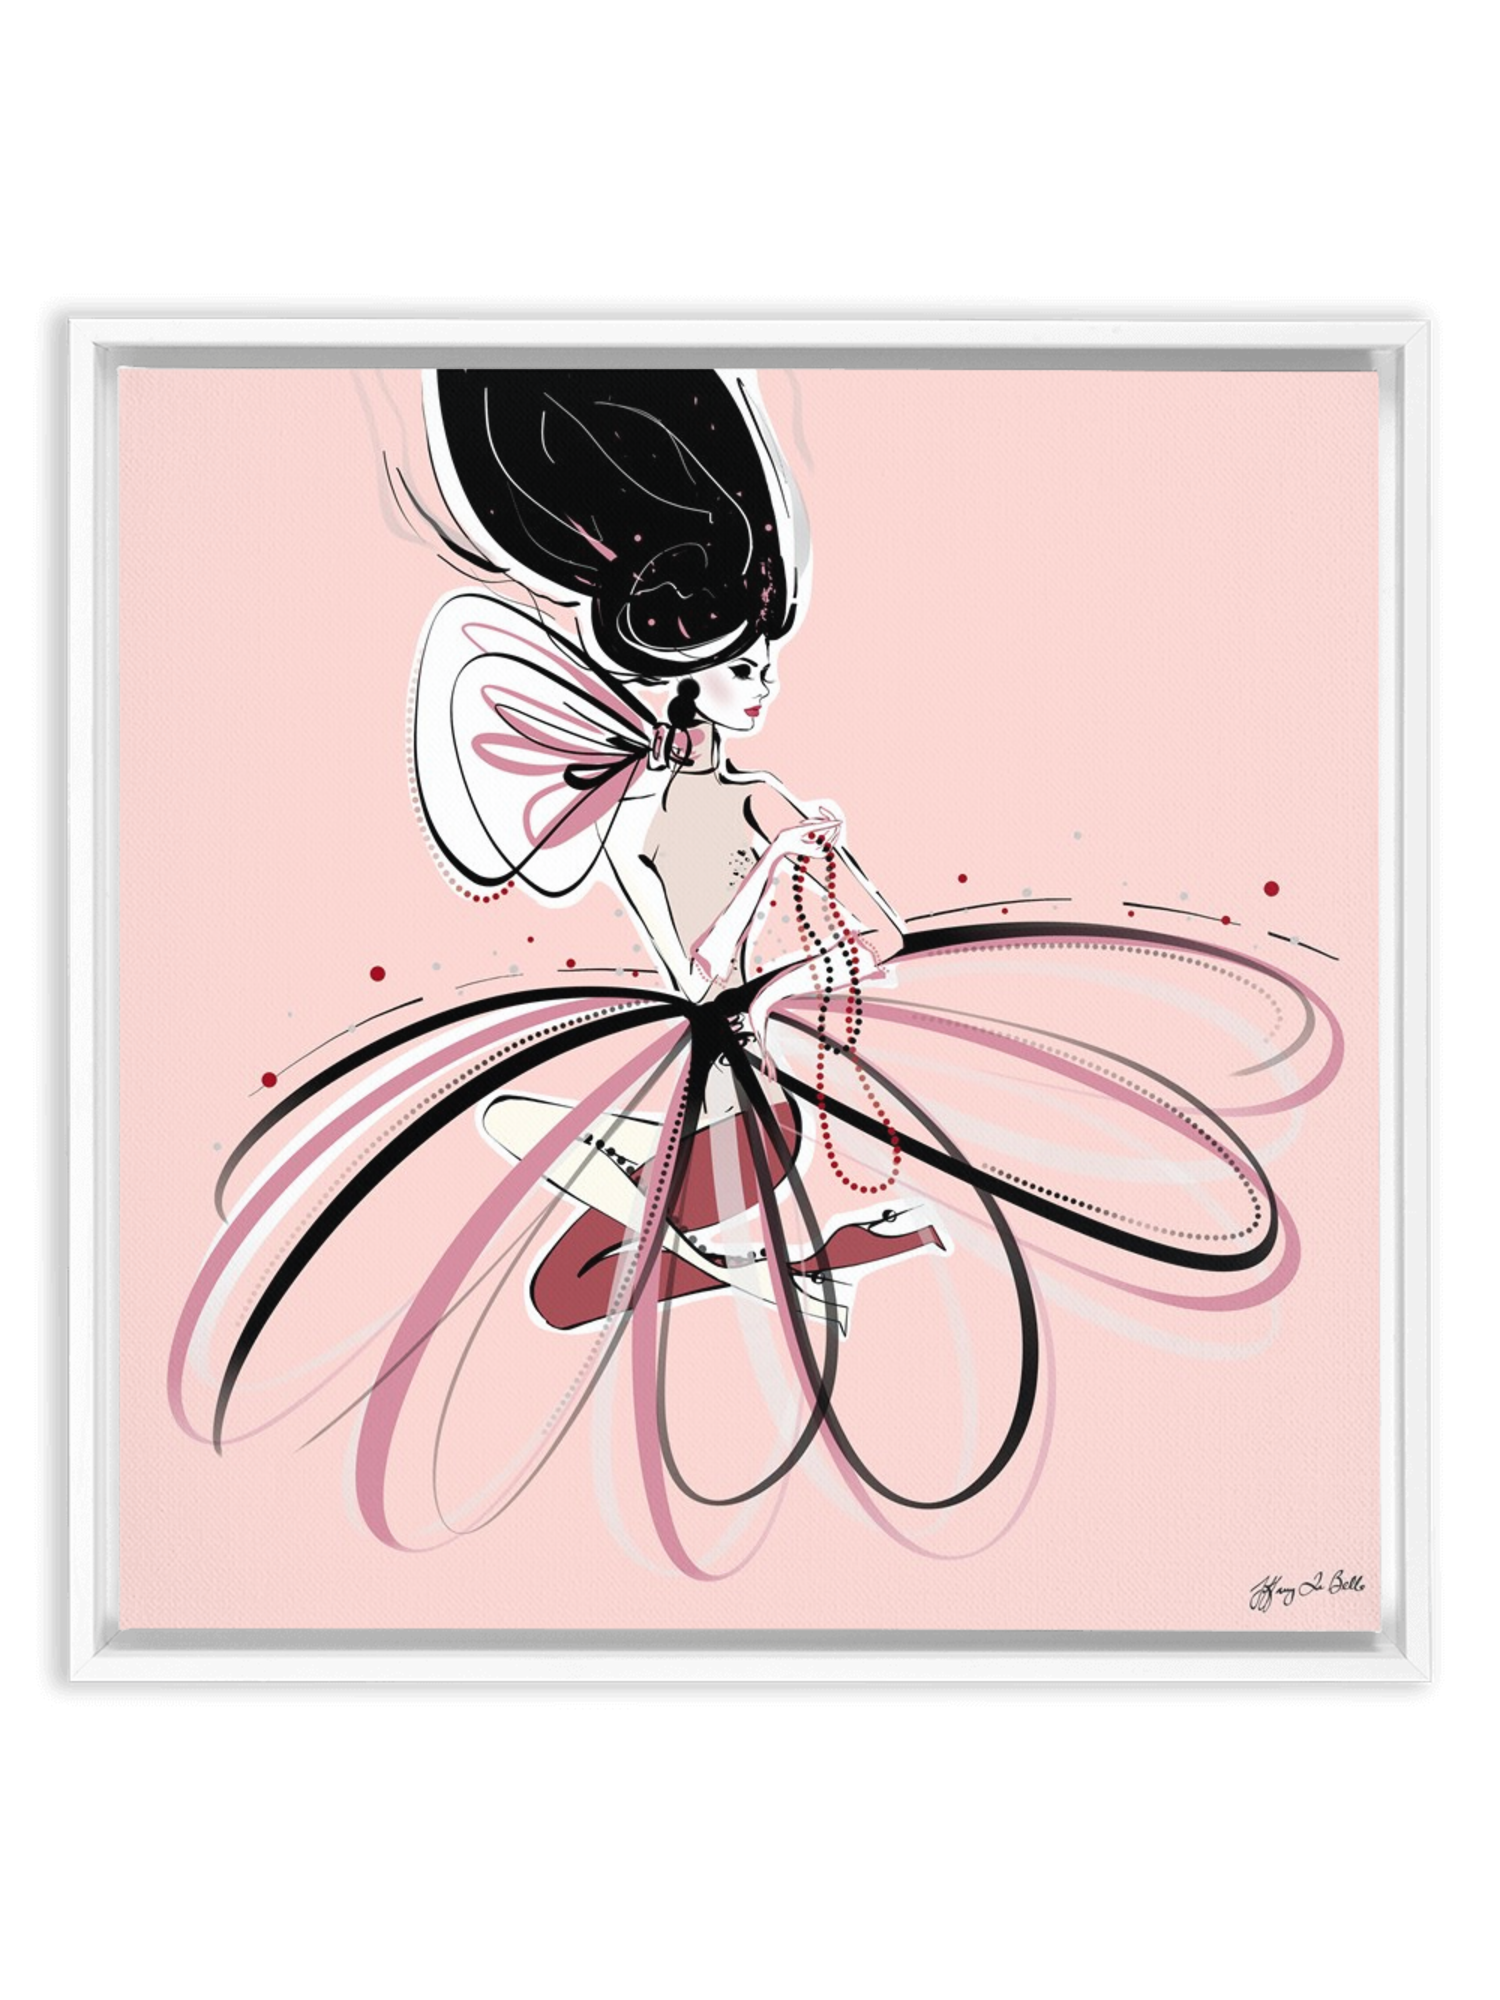 For the Love of Pearls in Pink - Illustration - Canvas Gallery Print - Unframed or Framed - Tiffany La Belle